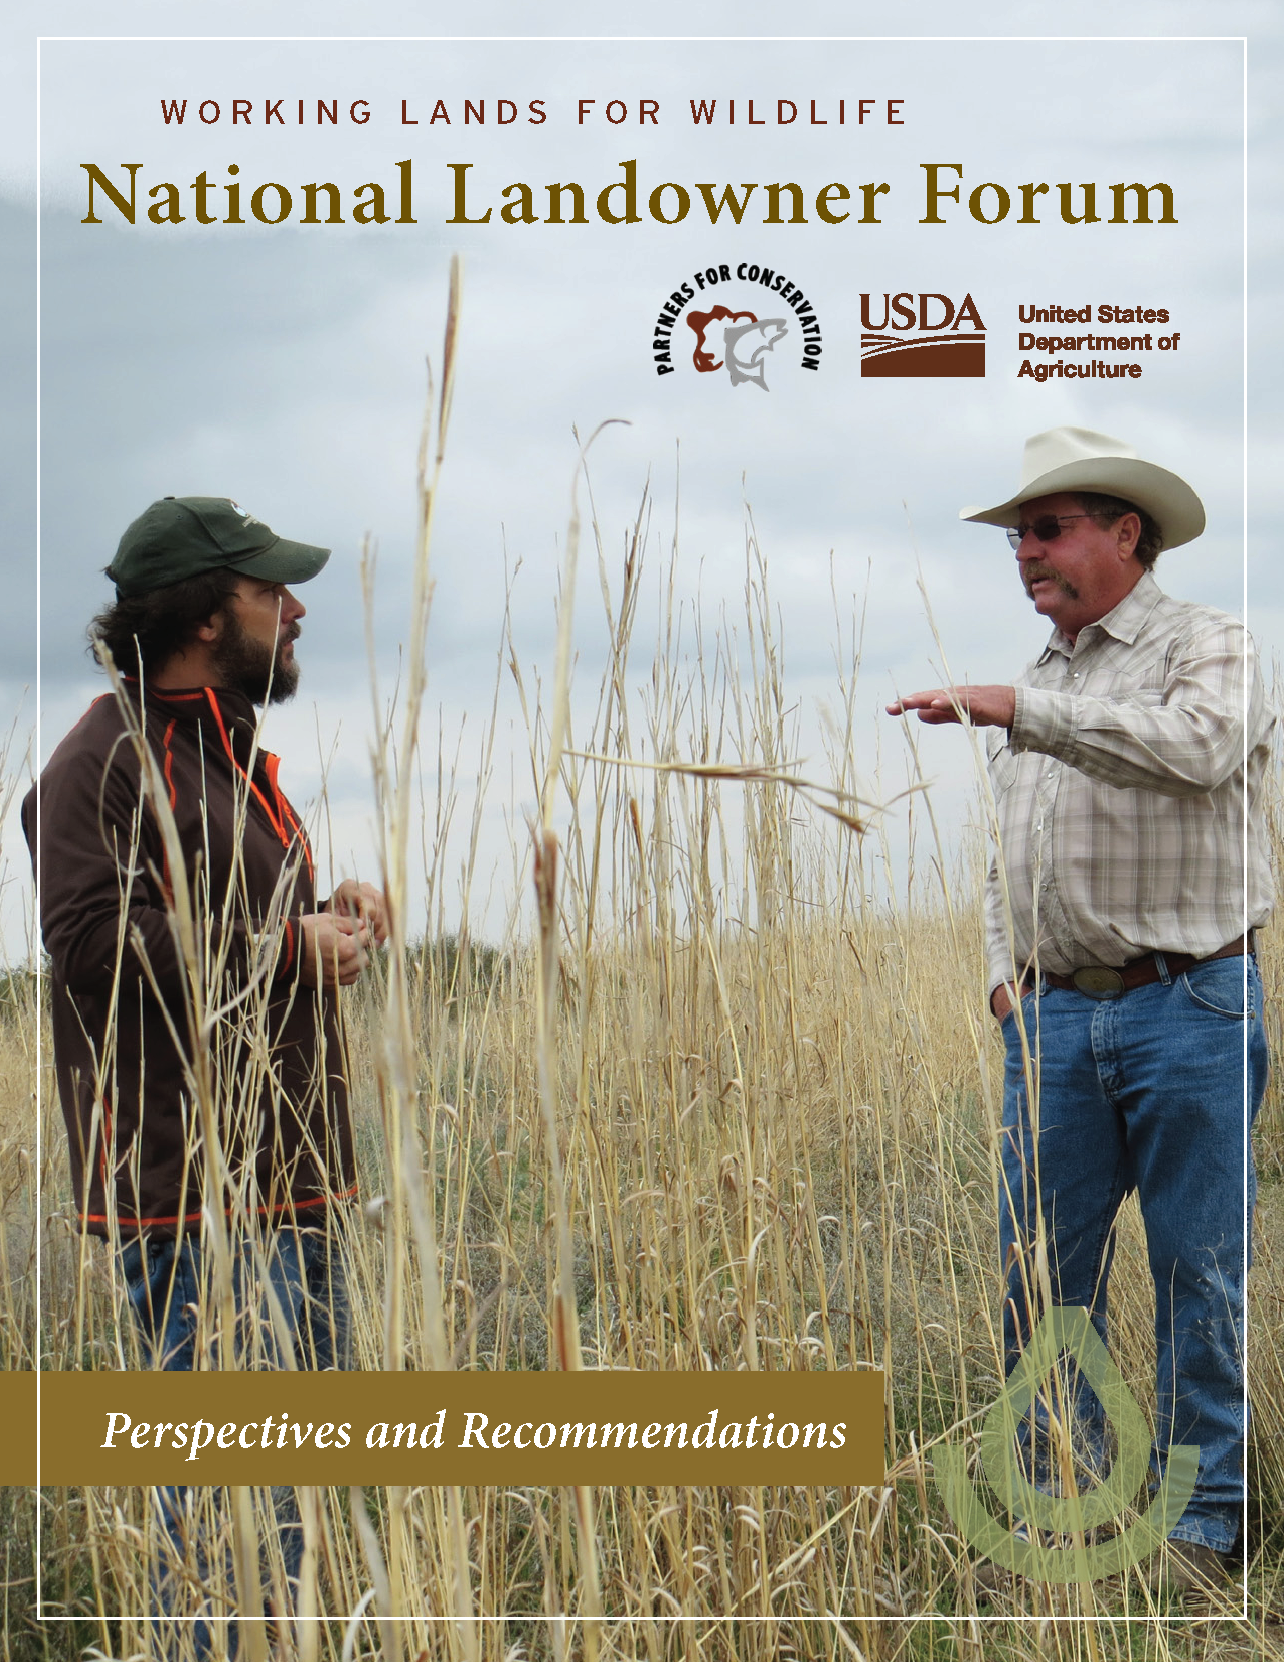 Pages from WLFW National Landowner Forum